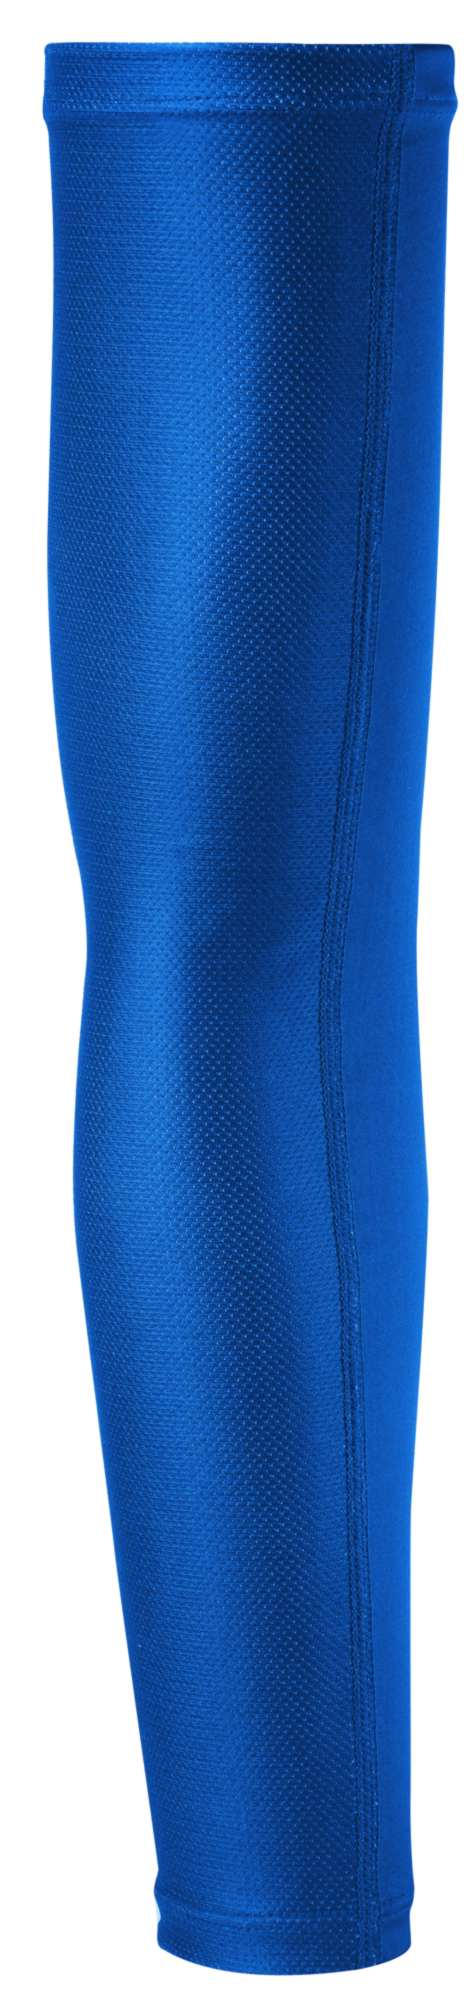 Nike Jordan Shooter Sleeves - Game Royal/White